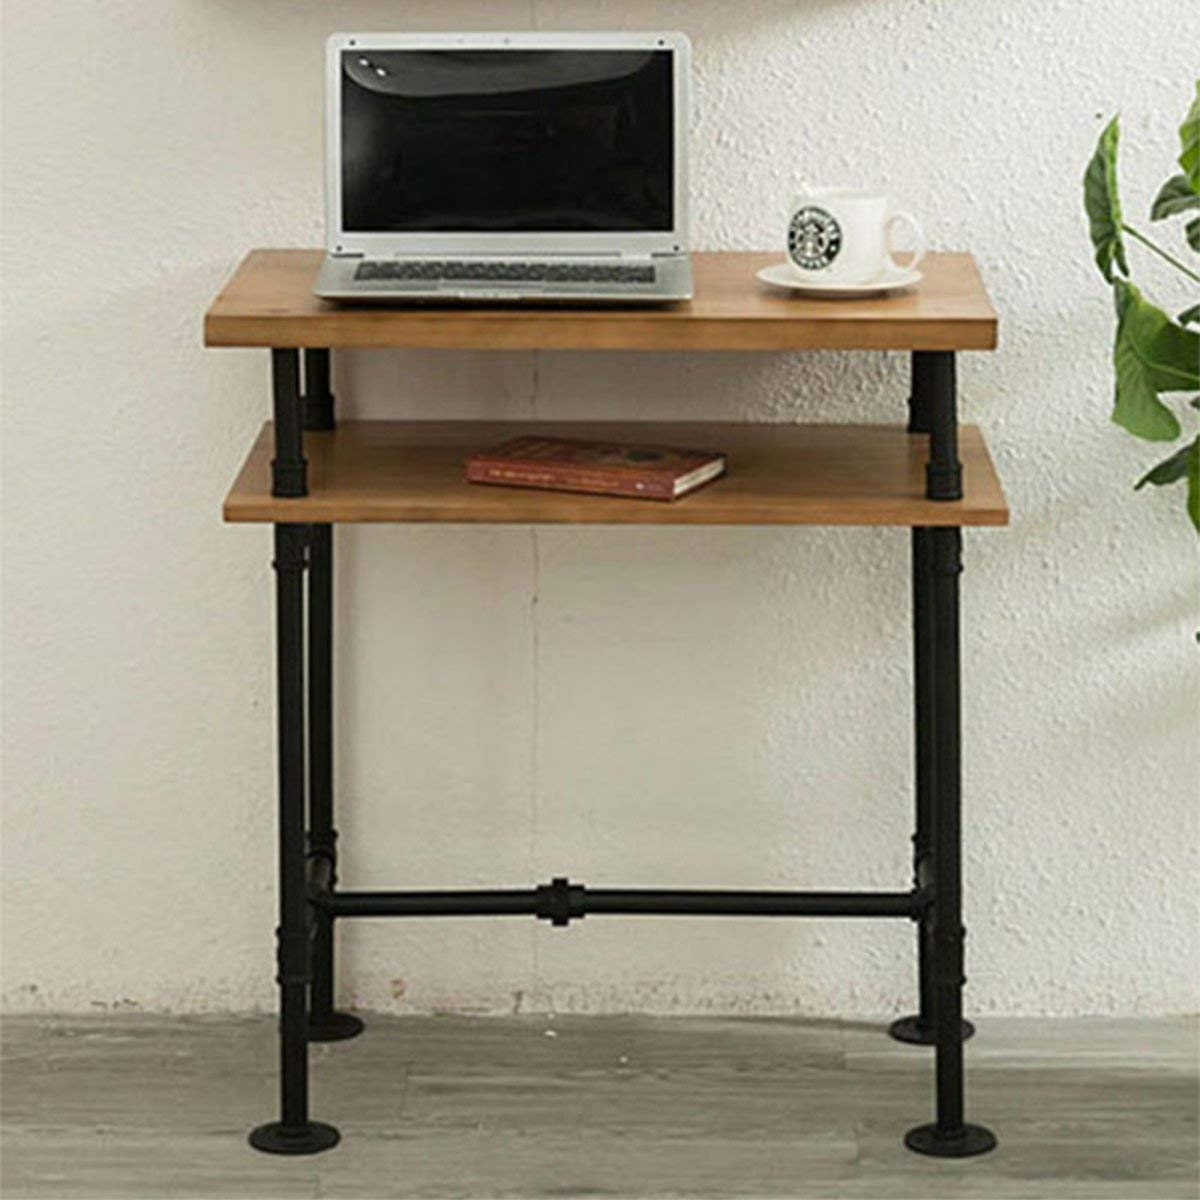 MZGH ISLAND 2 Tier Pipe And Wood Office Desktop Computer Desk ,American Home Single Writing Desk, Multifunctional Desk,Anywhere Console Table, Can Be Assembled or Removable